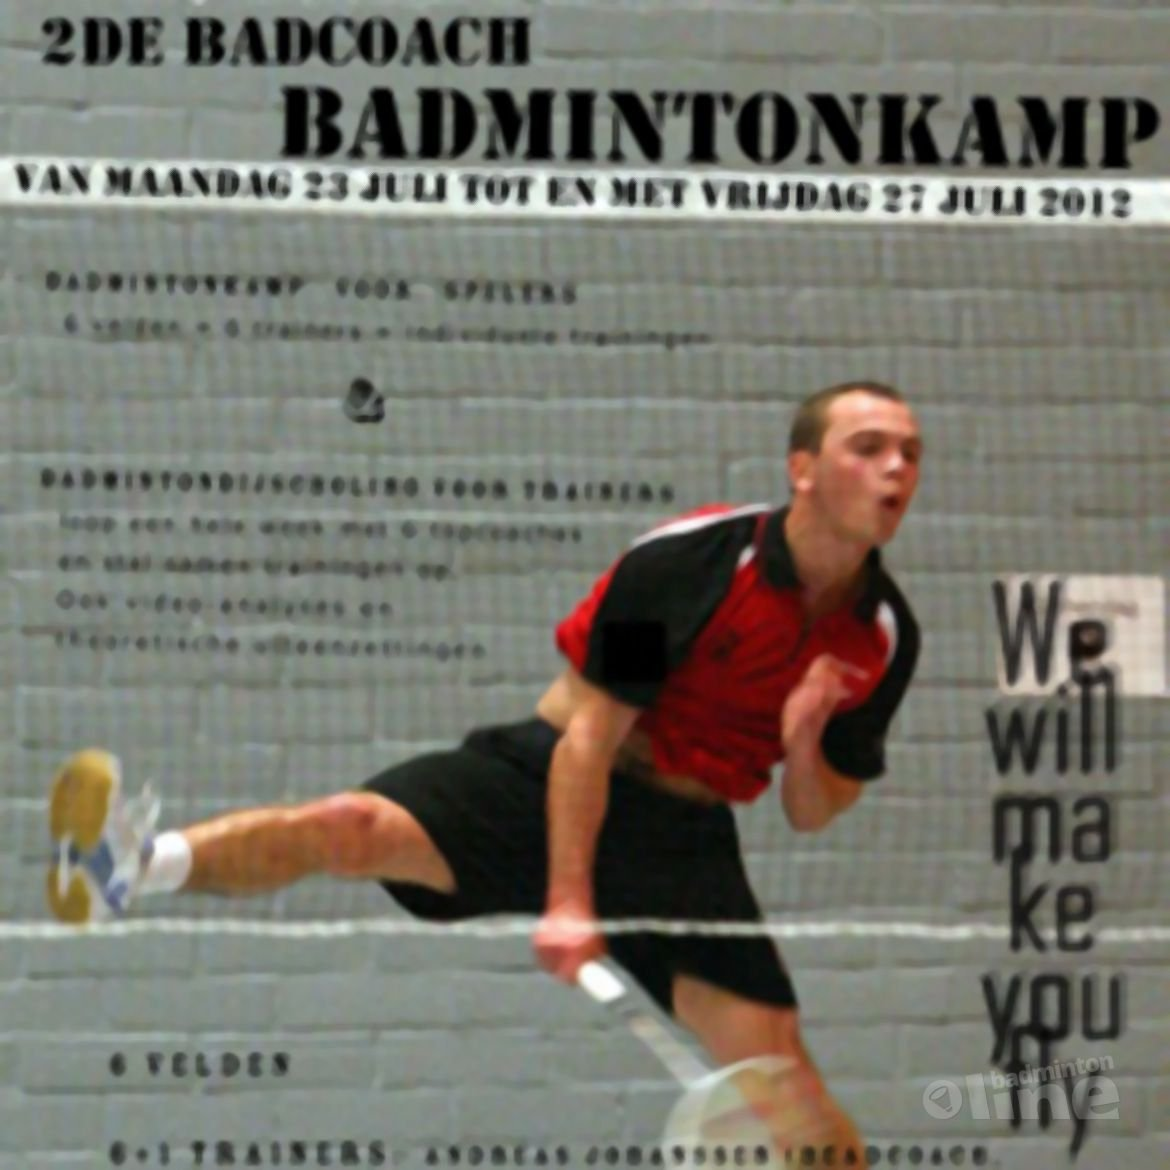 Tweede Badcoach badmintonkamp: 23 - 27 juli 2012